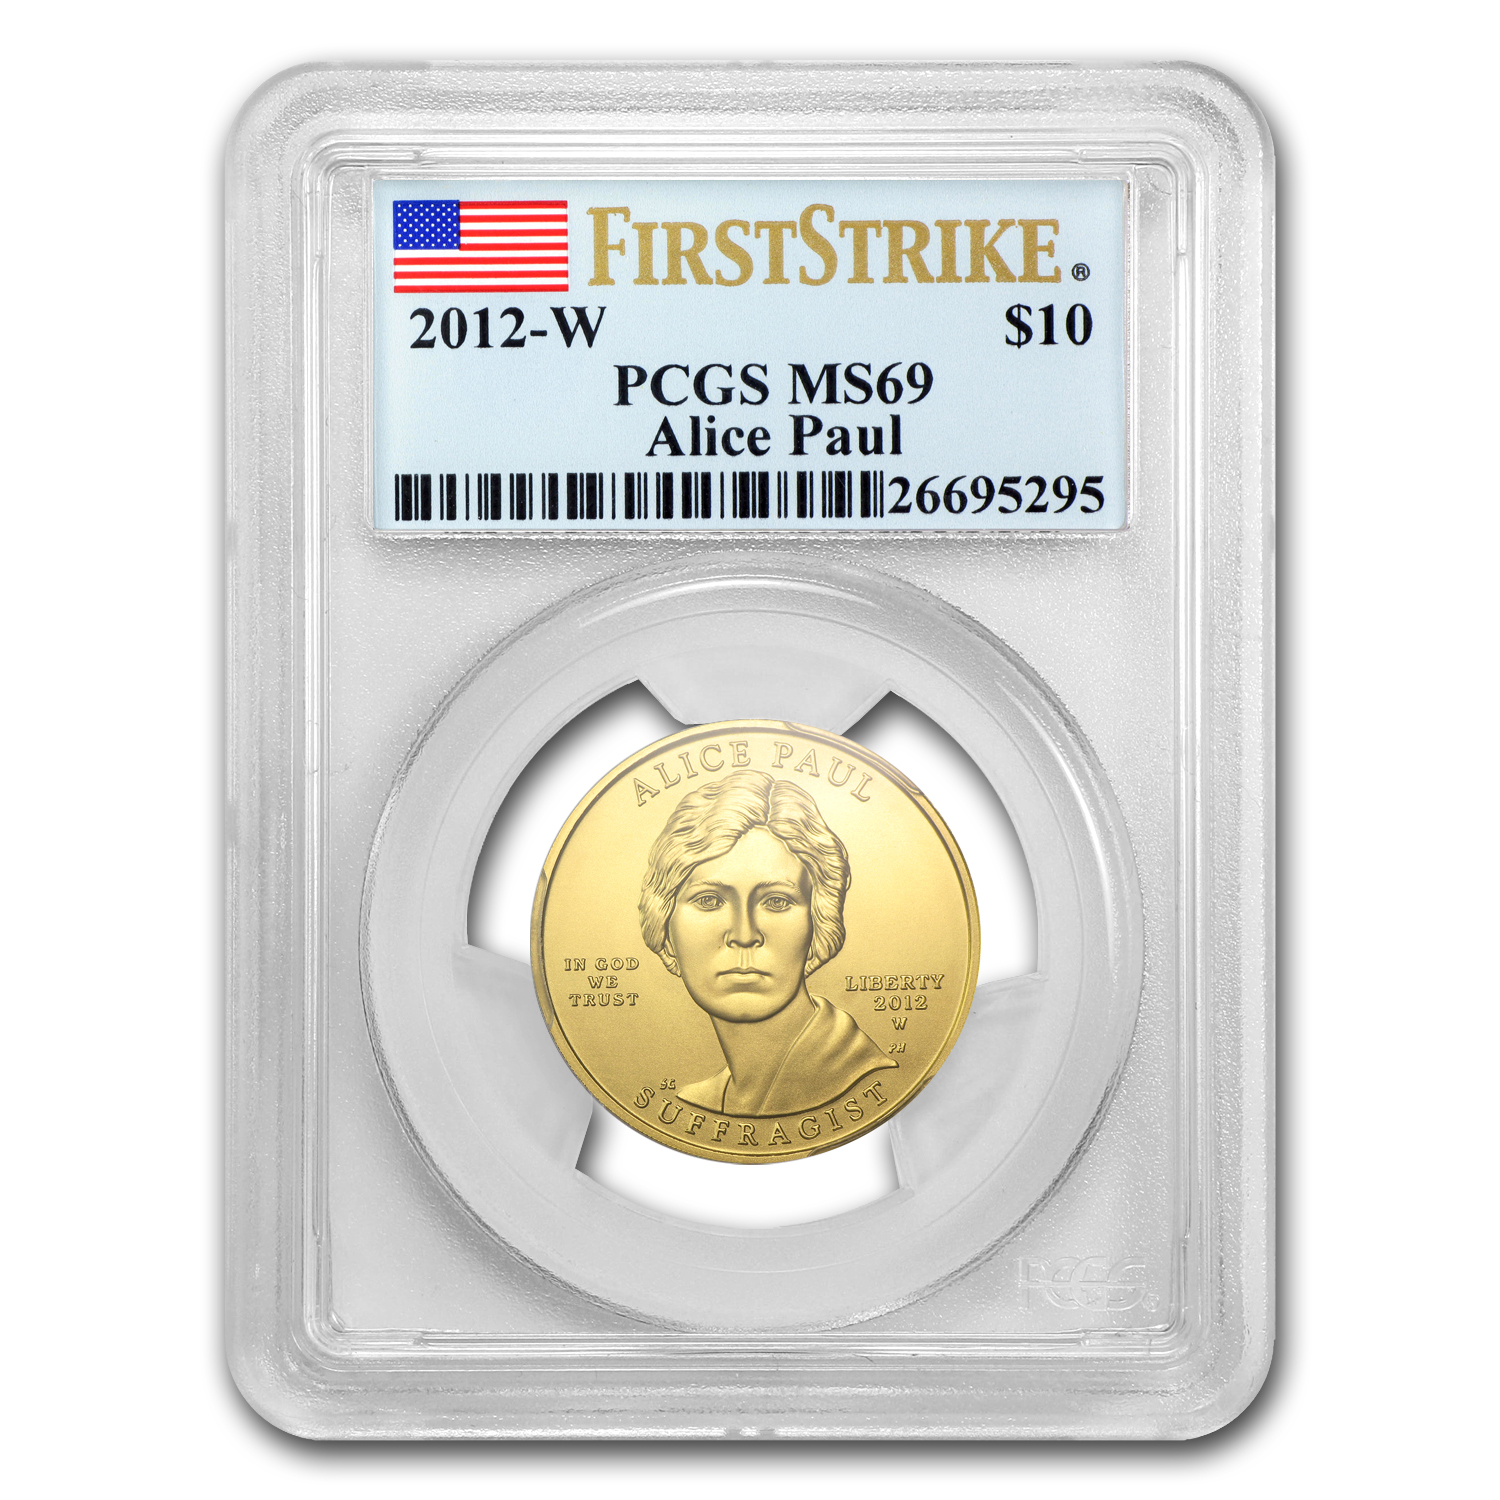 2012-W 1/2oz Uncirculated Gold Alice Paul PCGS MS-69 First Strike